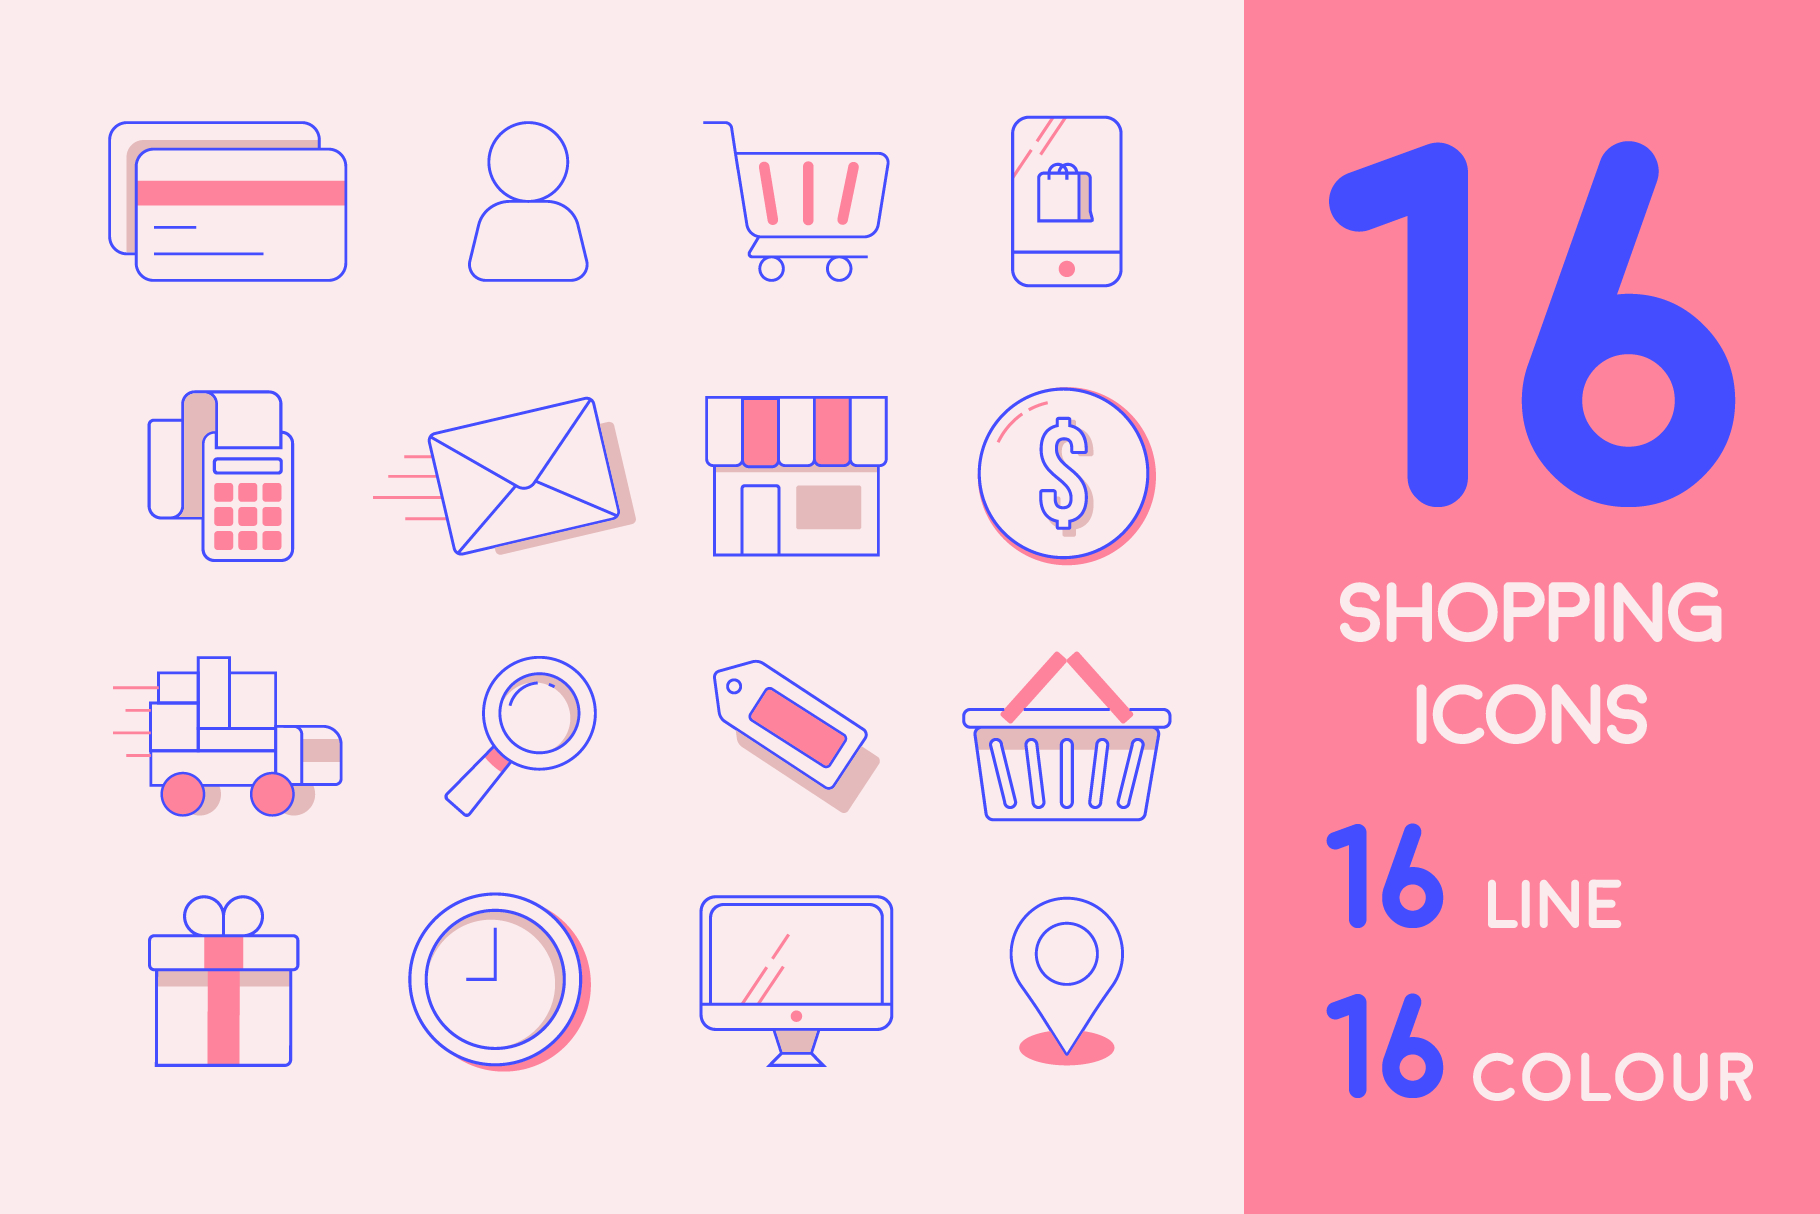 Online Shopping Icon Pack Graphic Icons By Mike Hill